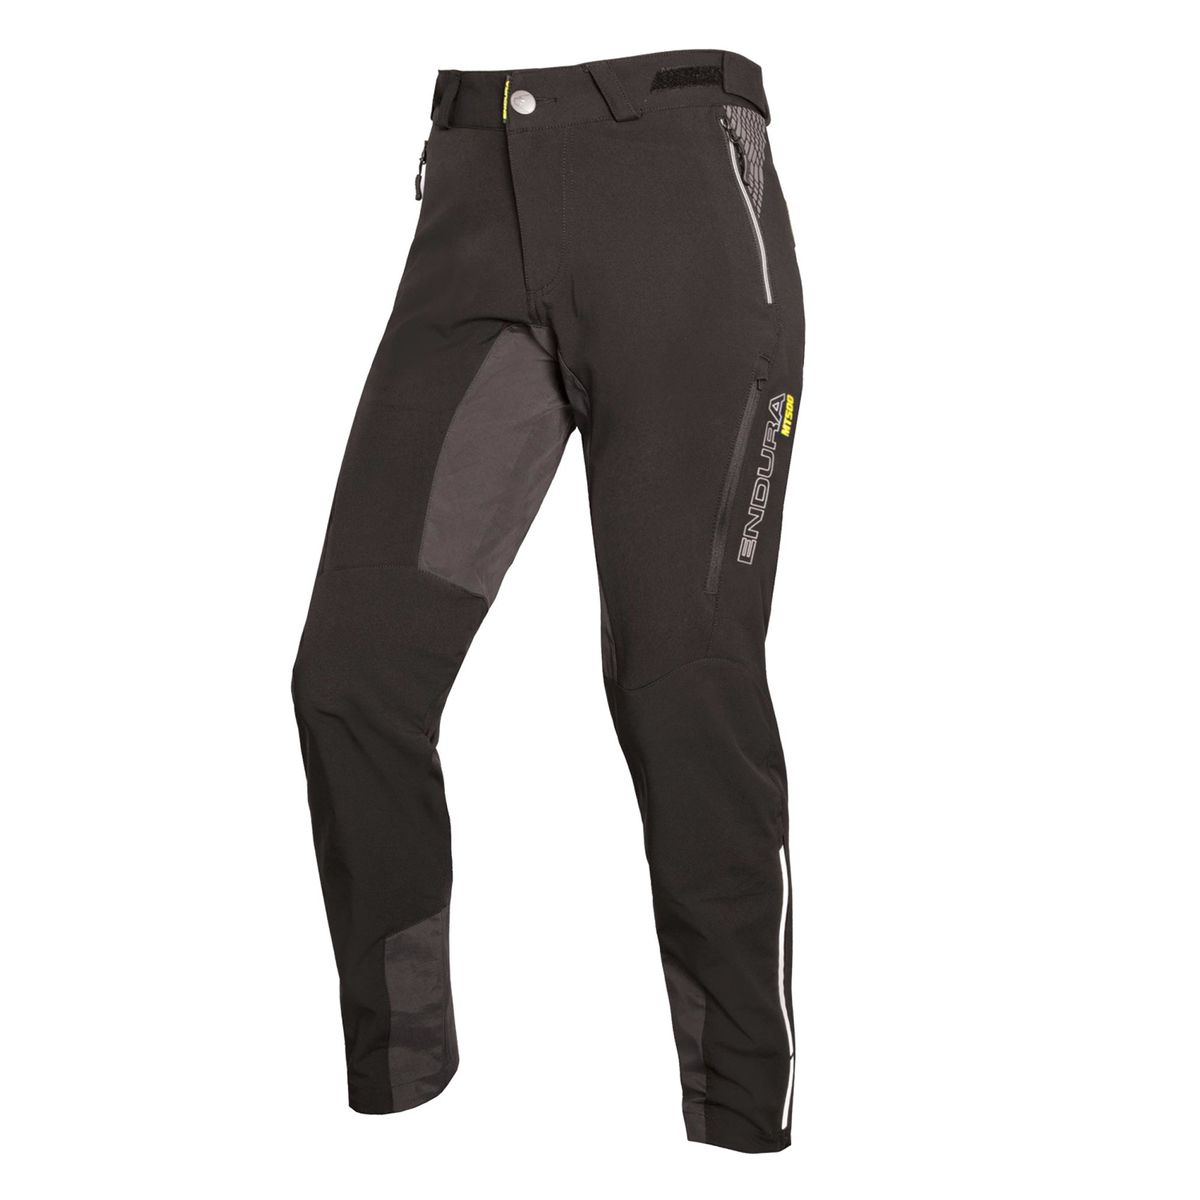 WMS MT500 SPRAY trousers for women